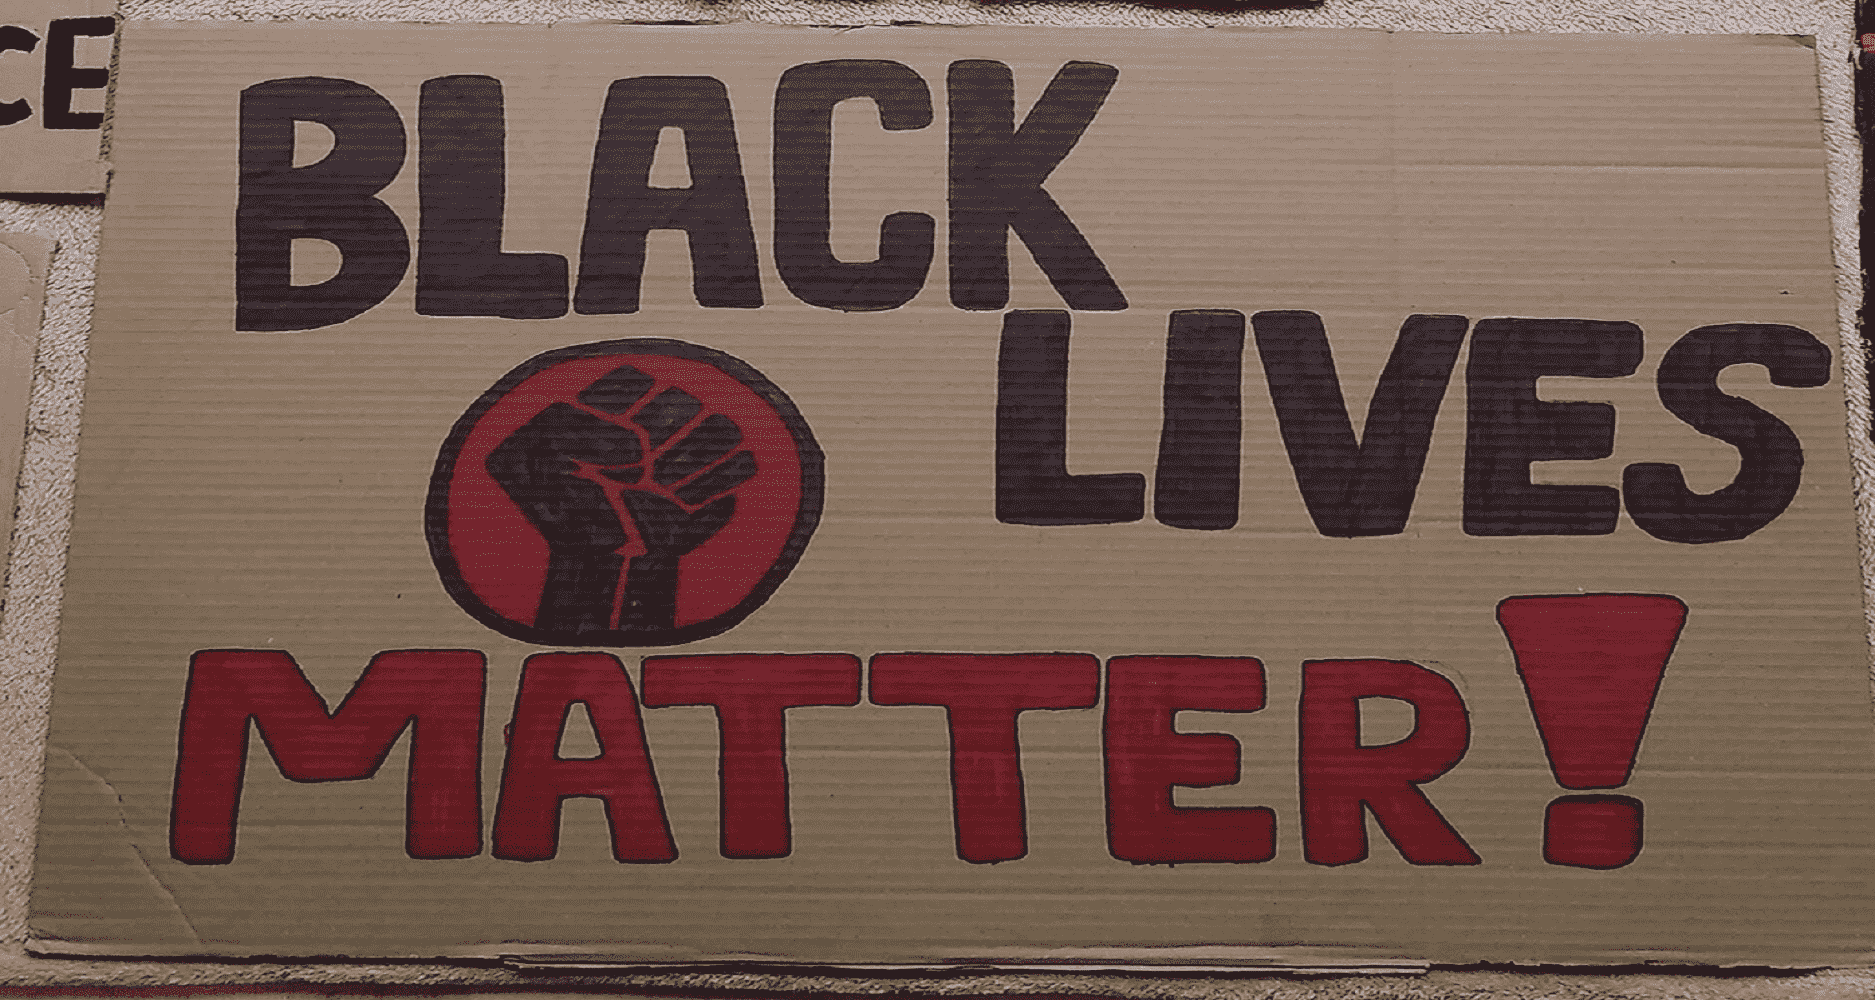 One symbol in particular has come to represent the Black Lives Matter movement: a closed fist held aloft.